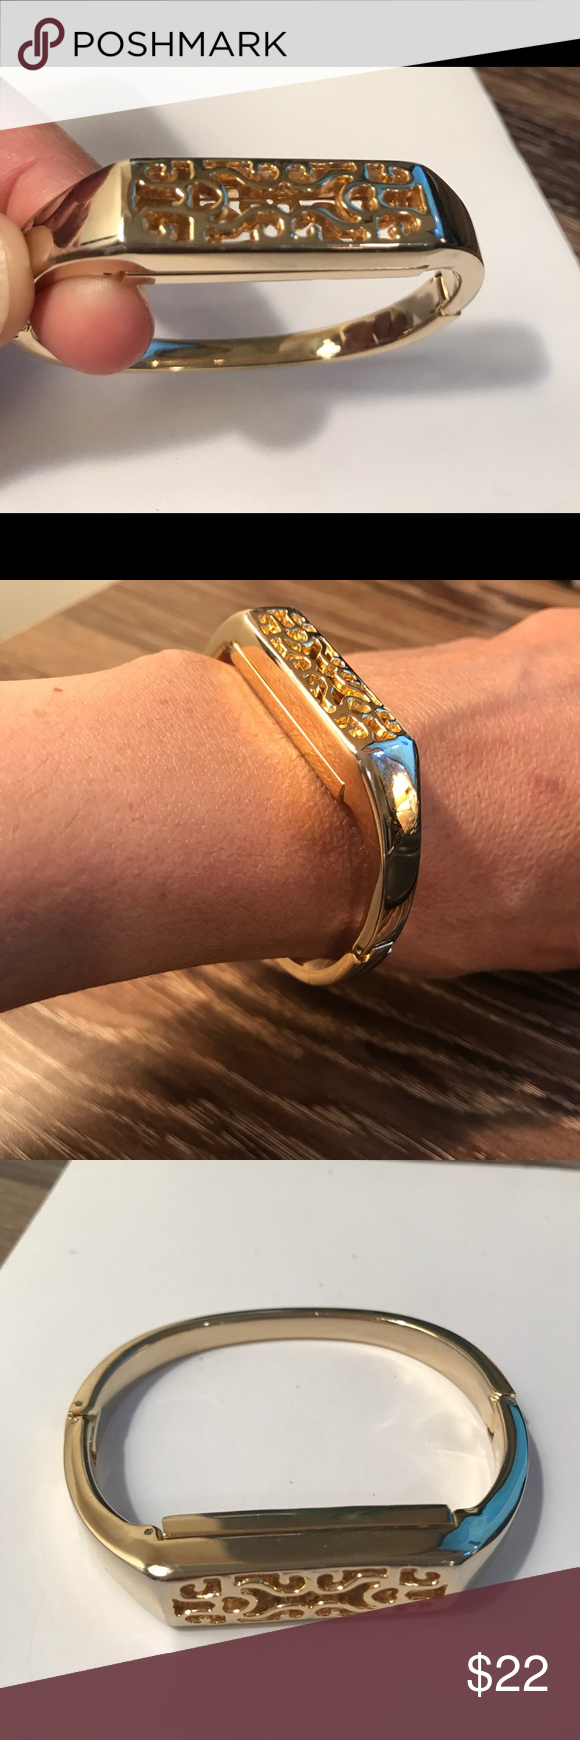 Fitbit flex gold bangle gold bangles fitbit and bangle